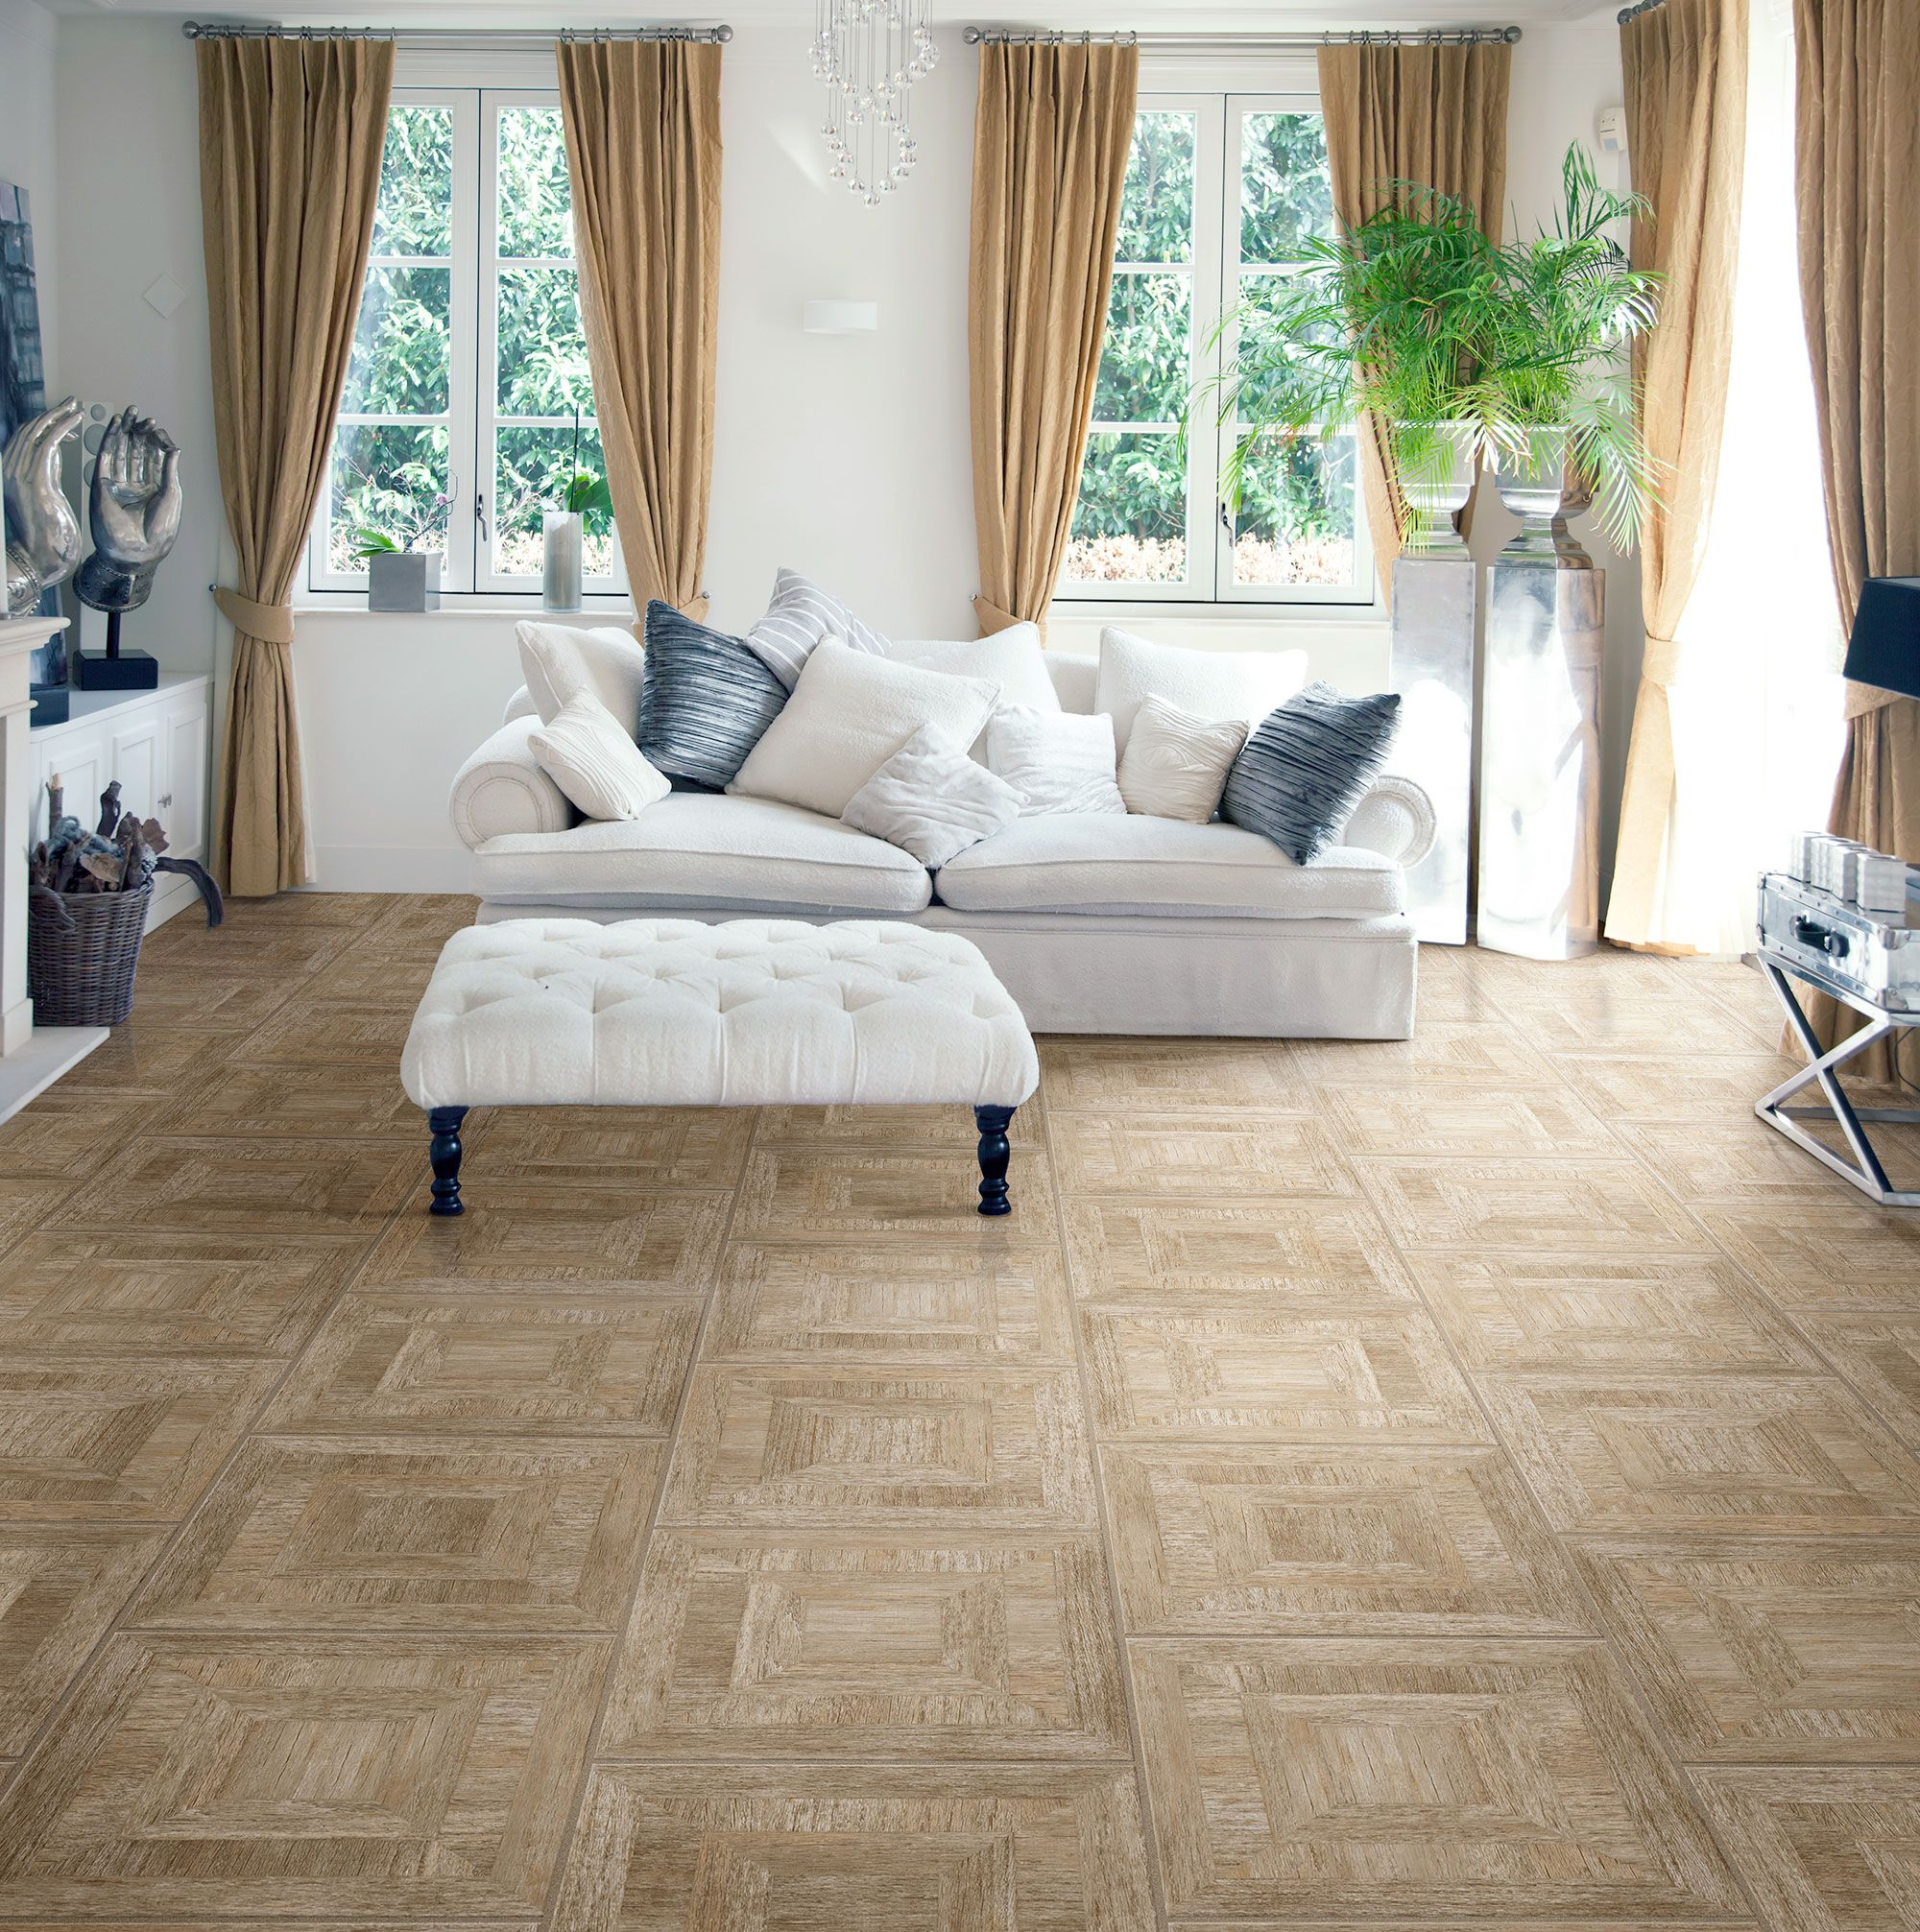 Woodstock peace congoleum duraceramic luxury vinyl flooring find this pin and more on congoleum duraceramic luxury vinyl flooring doublecrazyfo Images